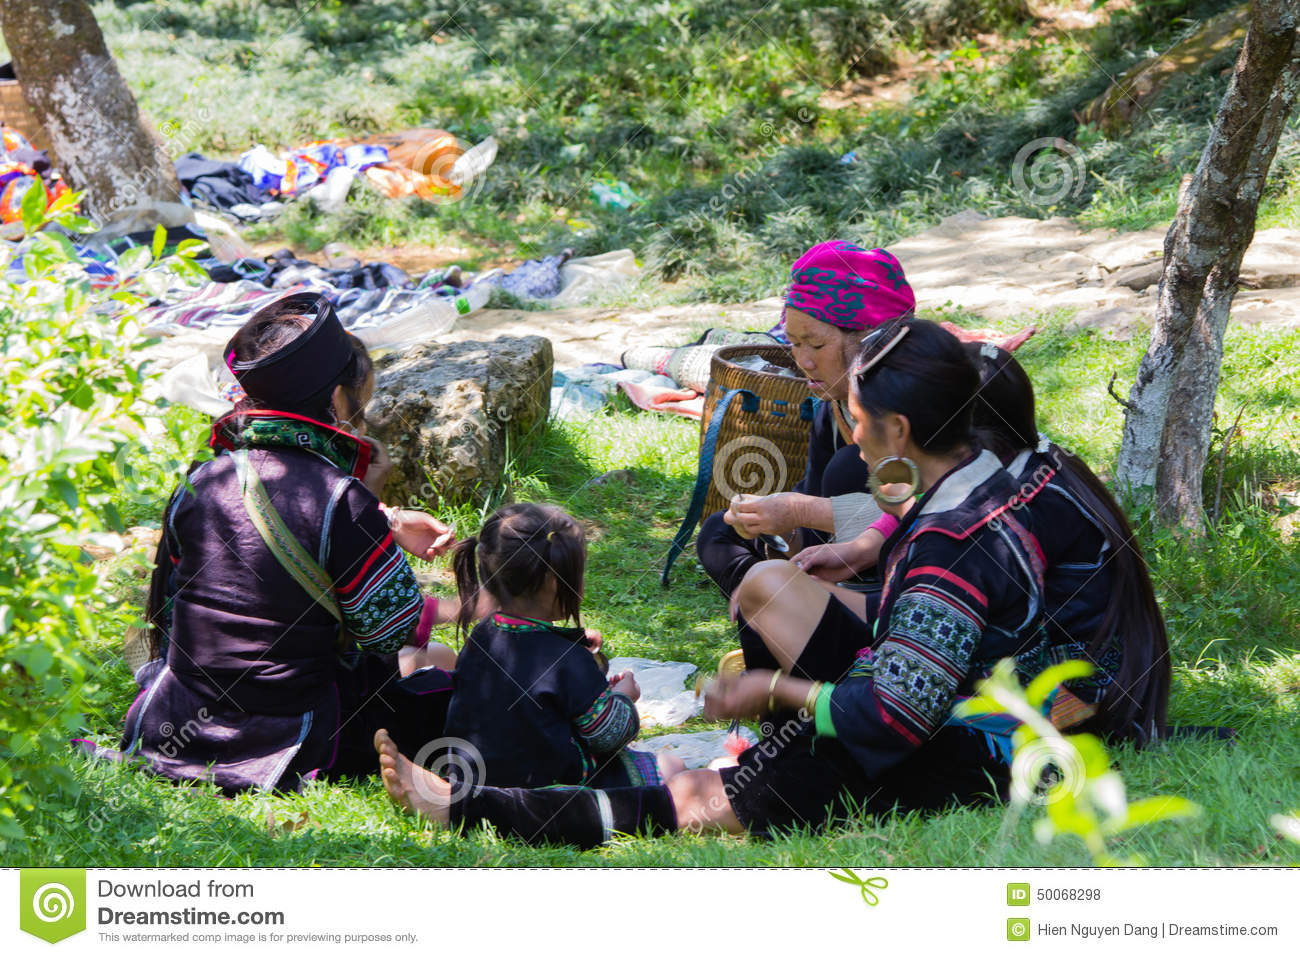 Hmong minority people in a family